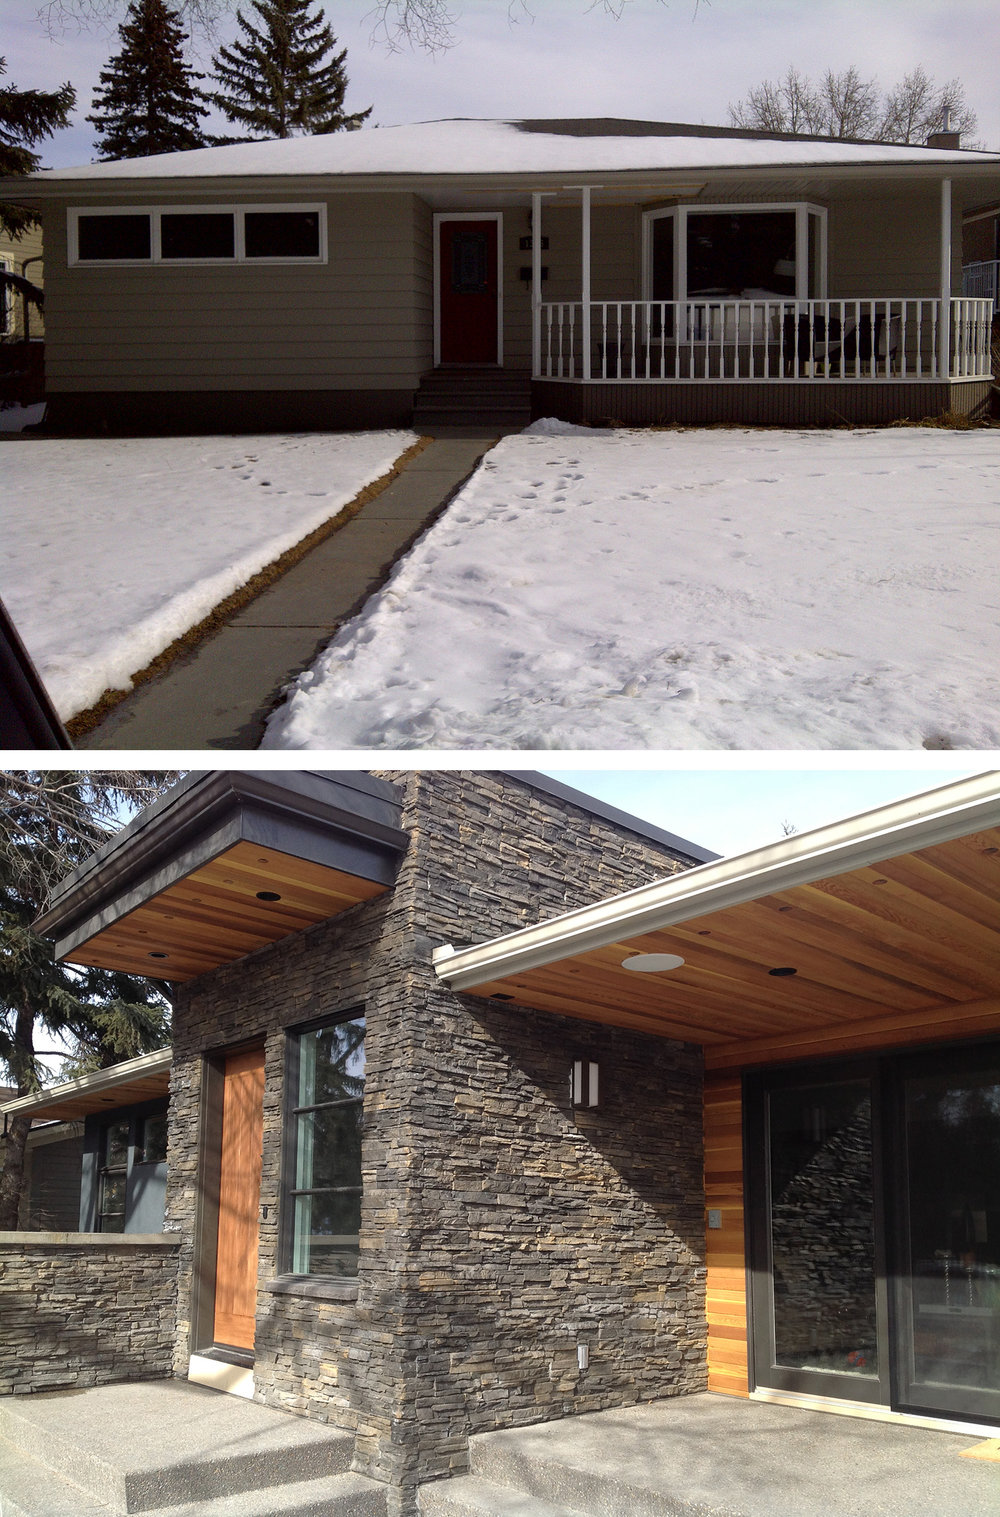 Before & After of a Home Addition in the Calgary community of St. Andrew's Heights